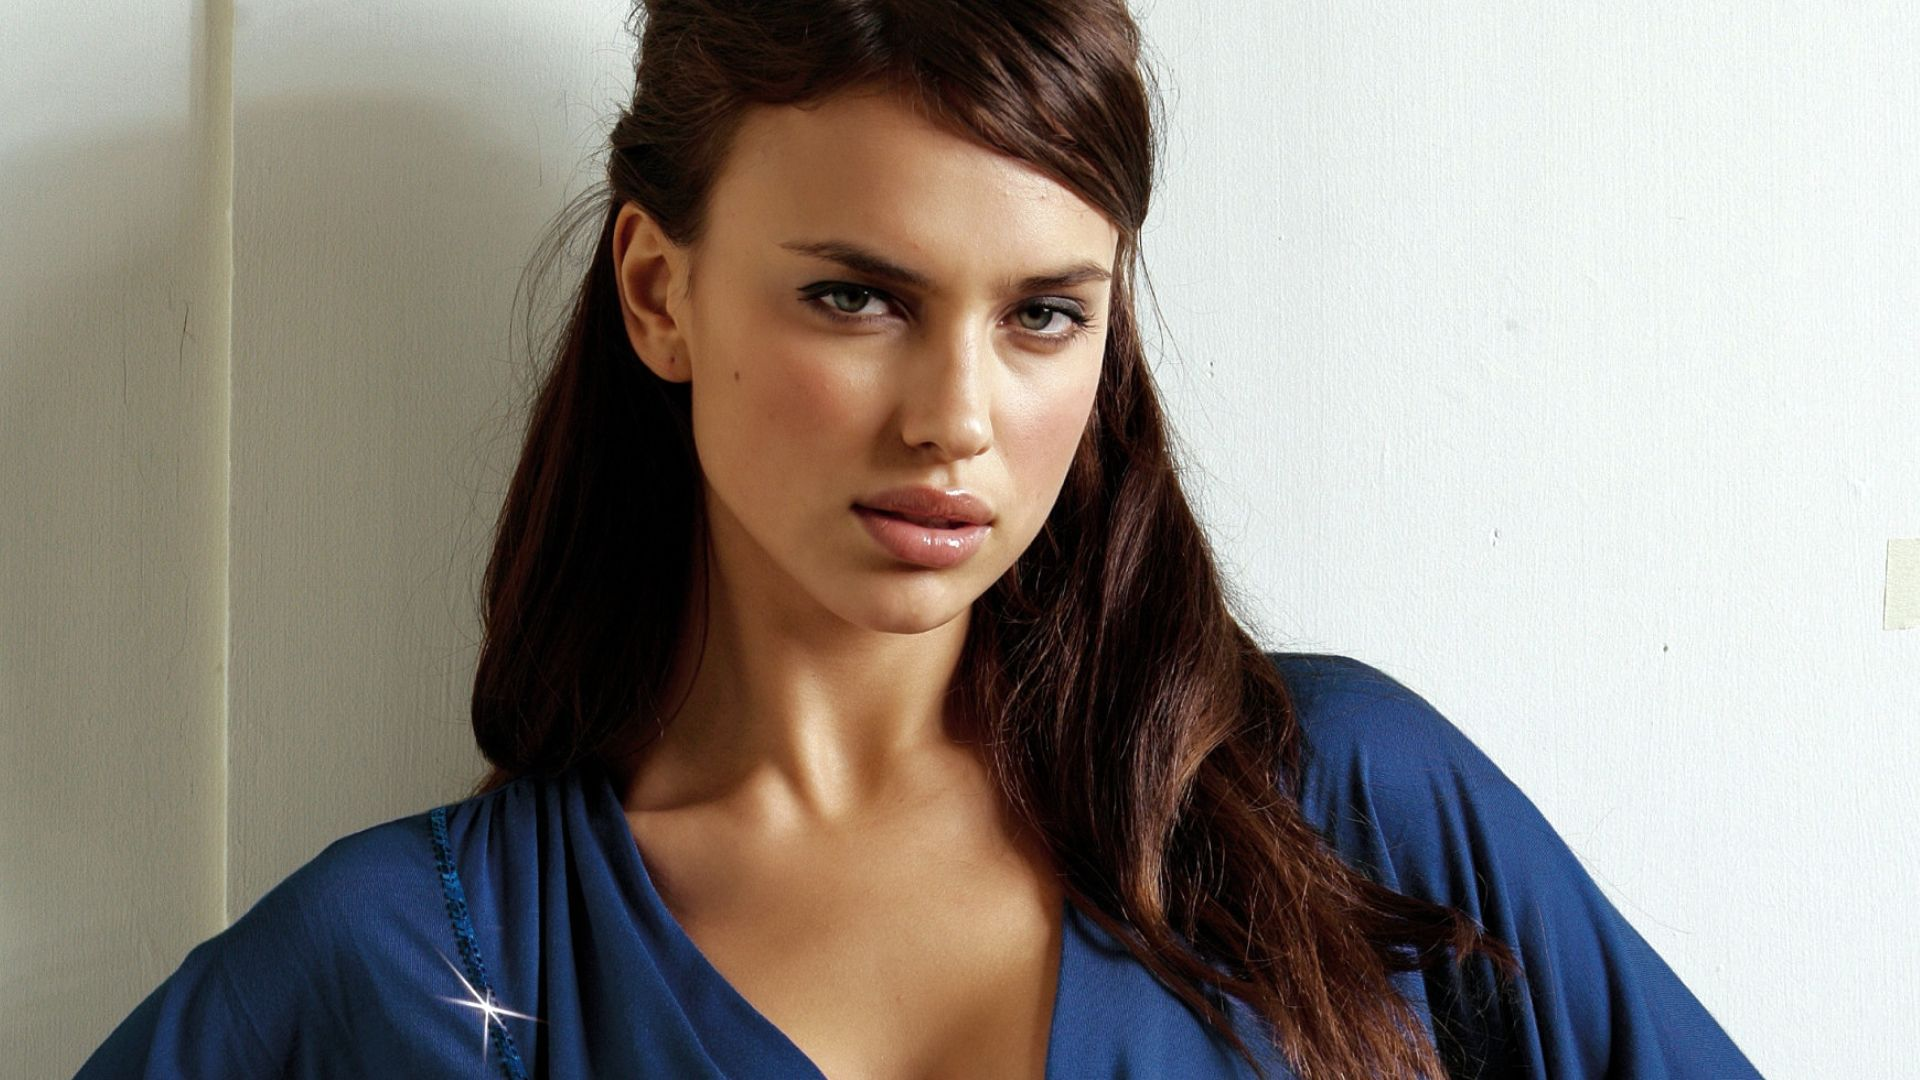 Irina Shayk Wallpapers Images Photos Pictures Backgrounds